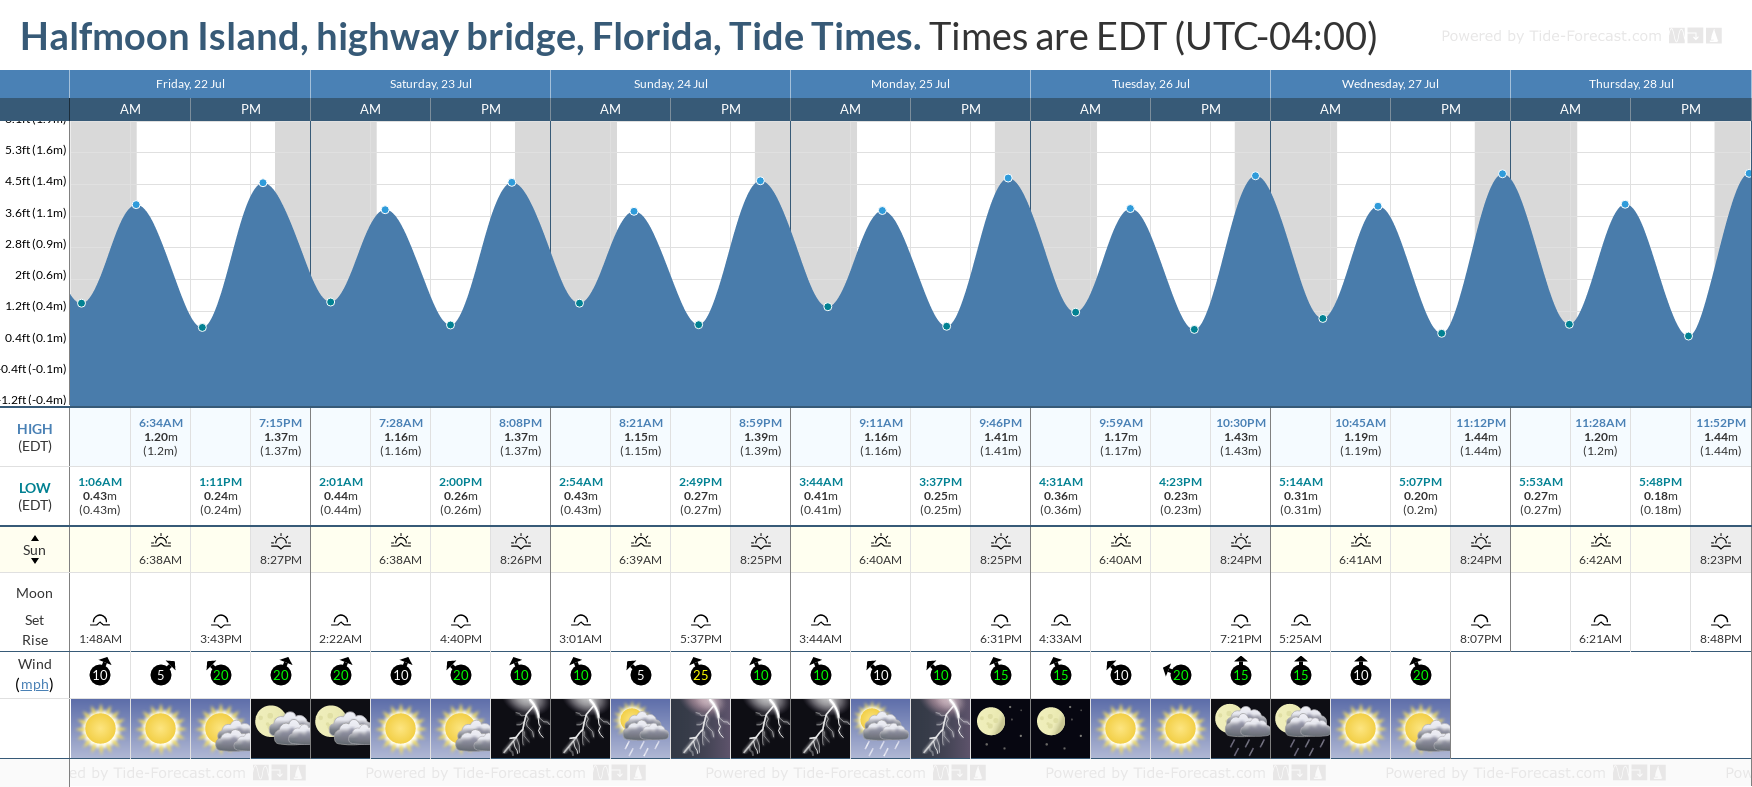 Halfmoon Island, highway bridge, Florida Tide Chart including high and low tide tide times for the next 7 days